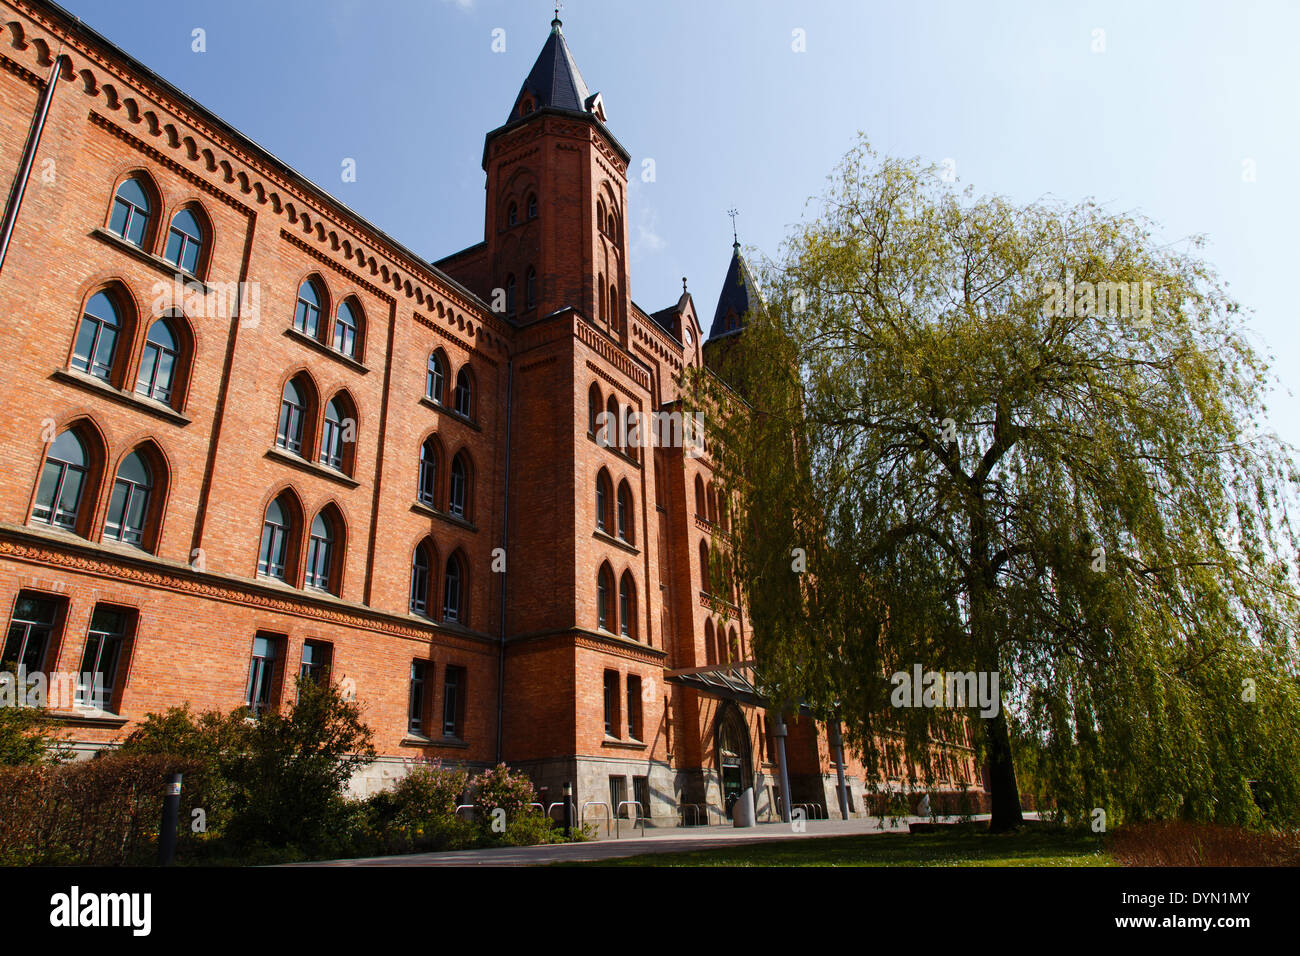 Photograpgh of the new city hall (Neues Rathaus) of Celle (Germany). - Stock Image